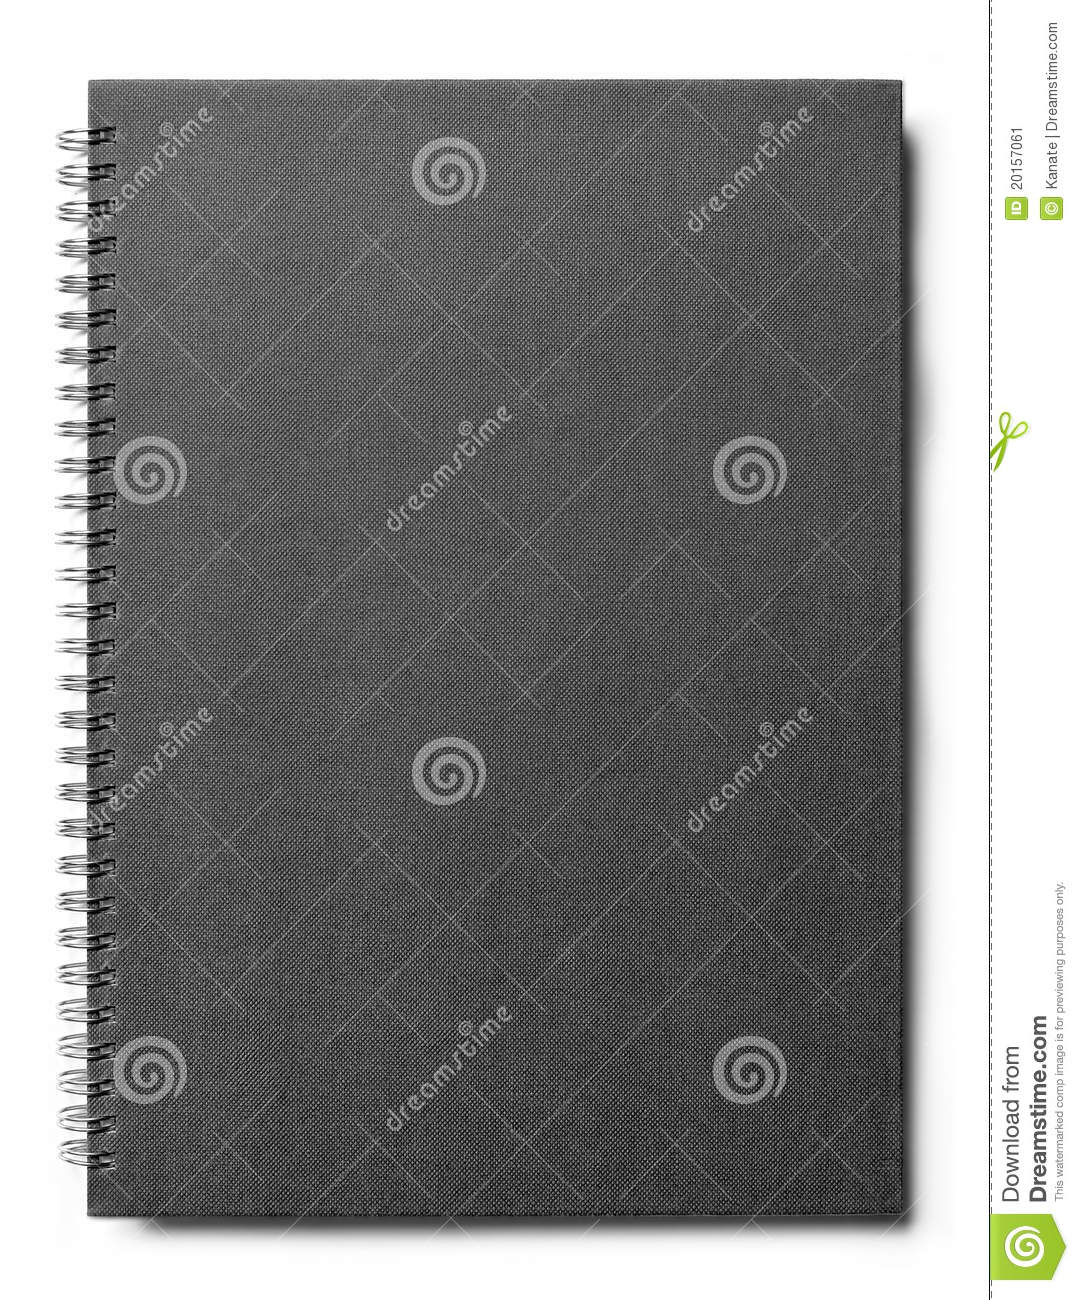 Book With A Black Cover ~ Blank book with black cover stock image